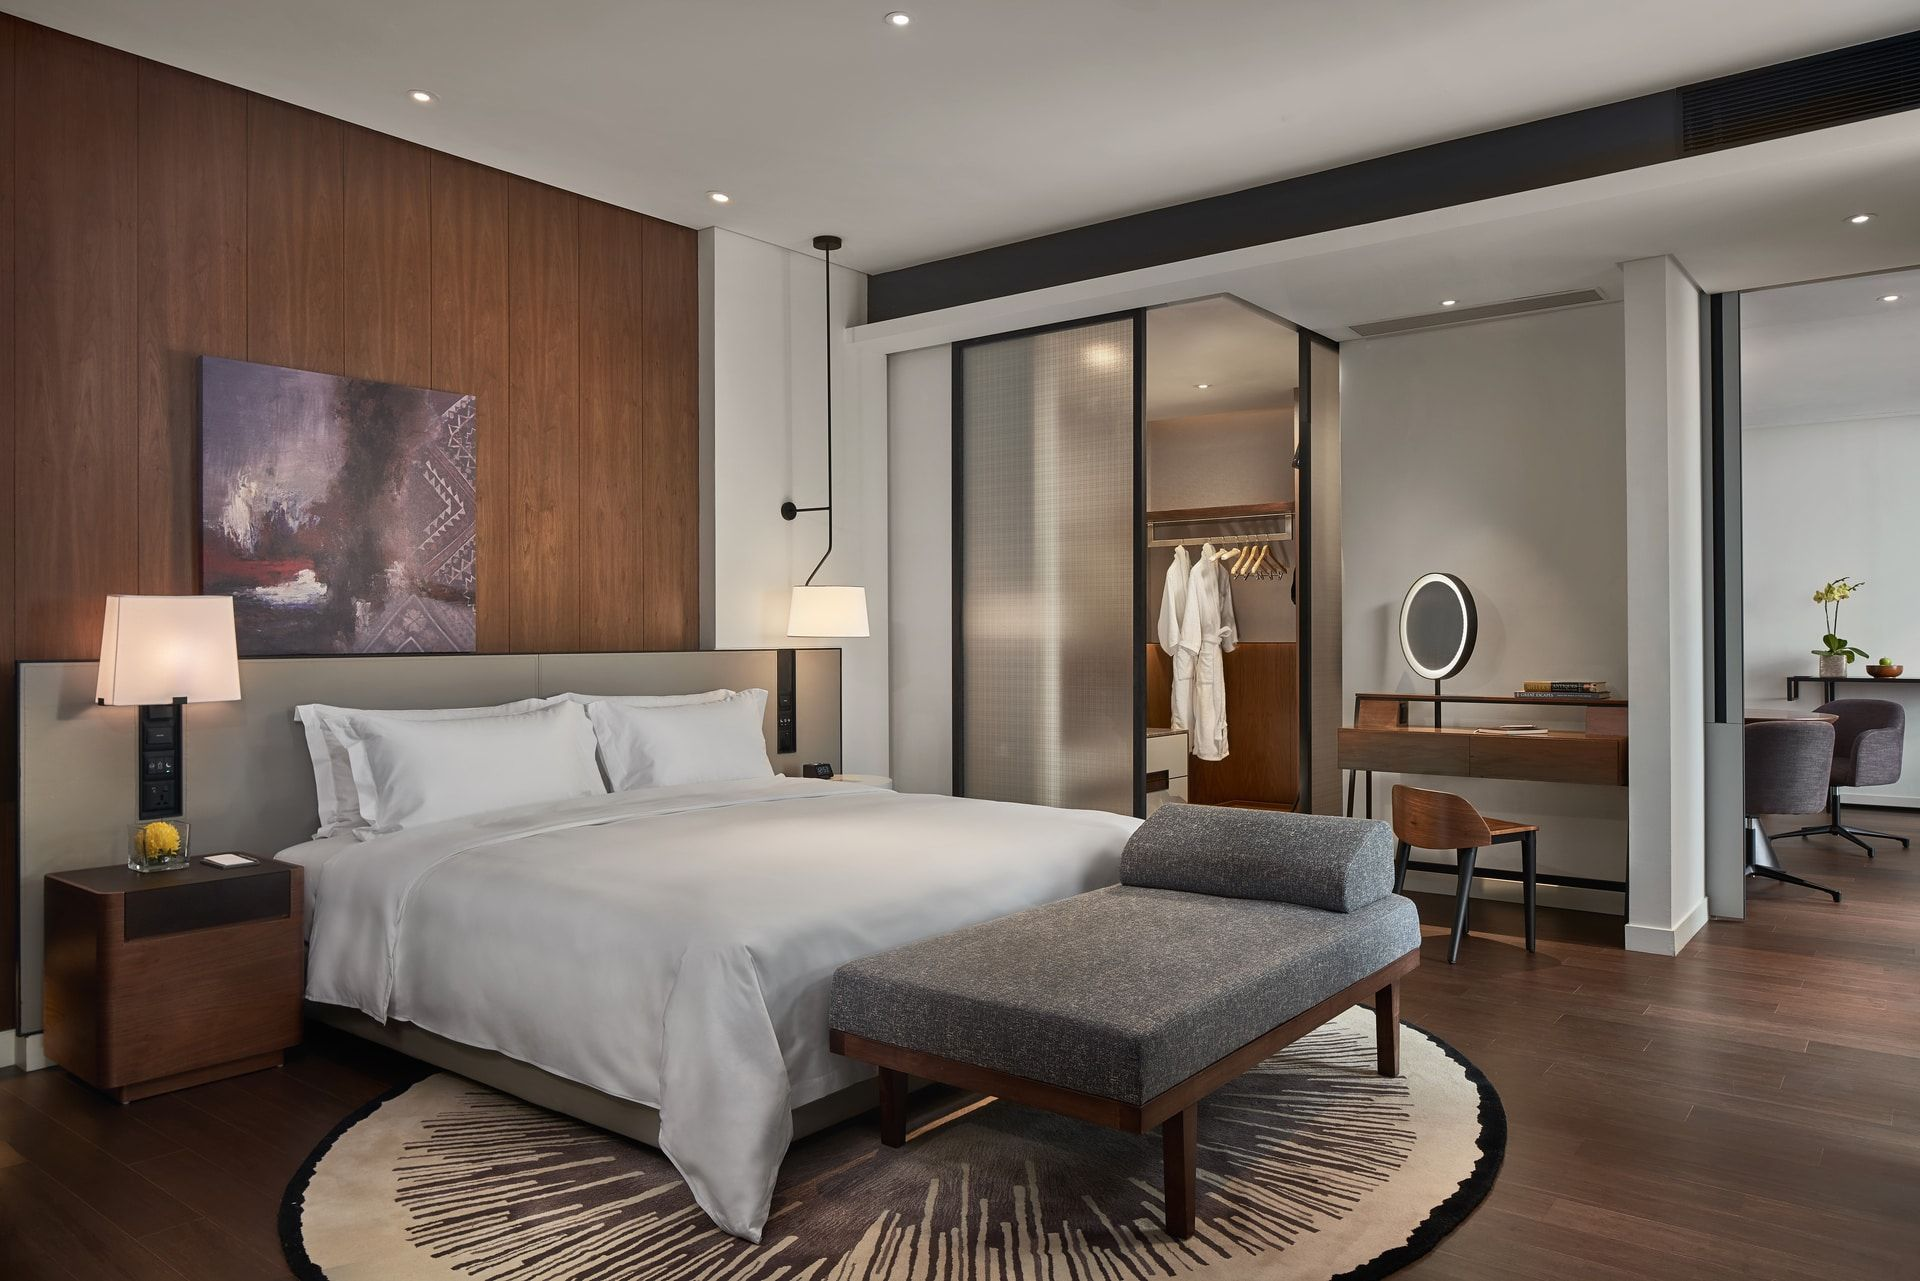 9 New Luxury Hotels In The Klang Valley To Hit Up For A Perfect Weekend